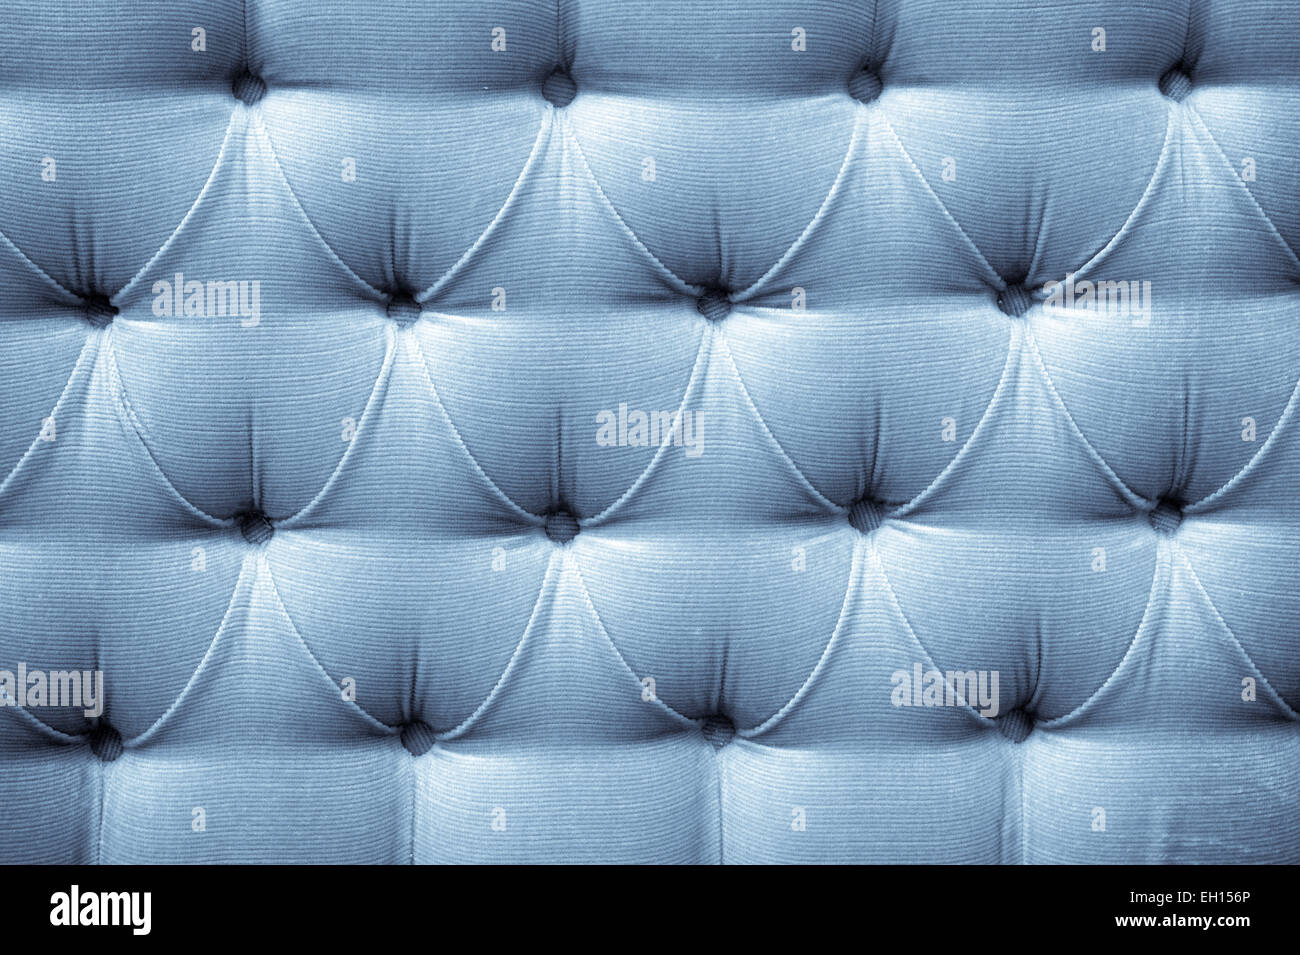 A fabric upholstery background - Stock Image